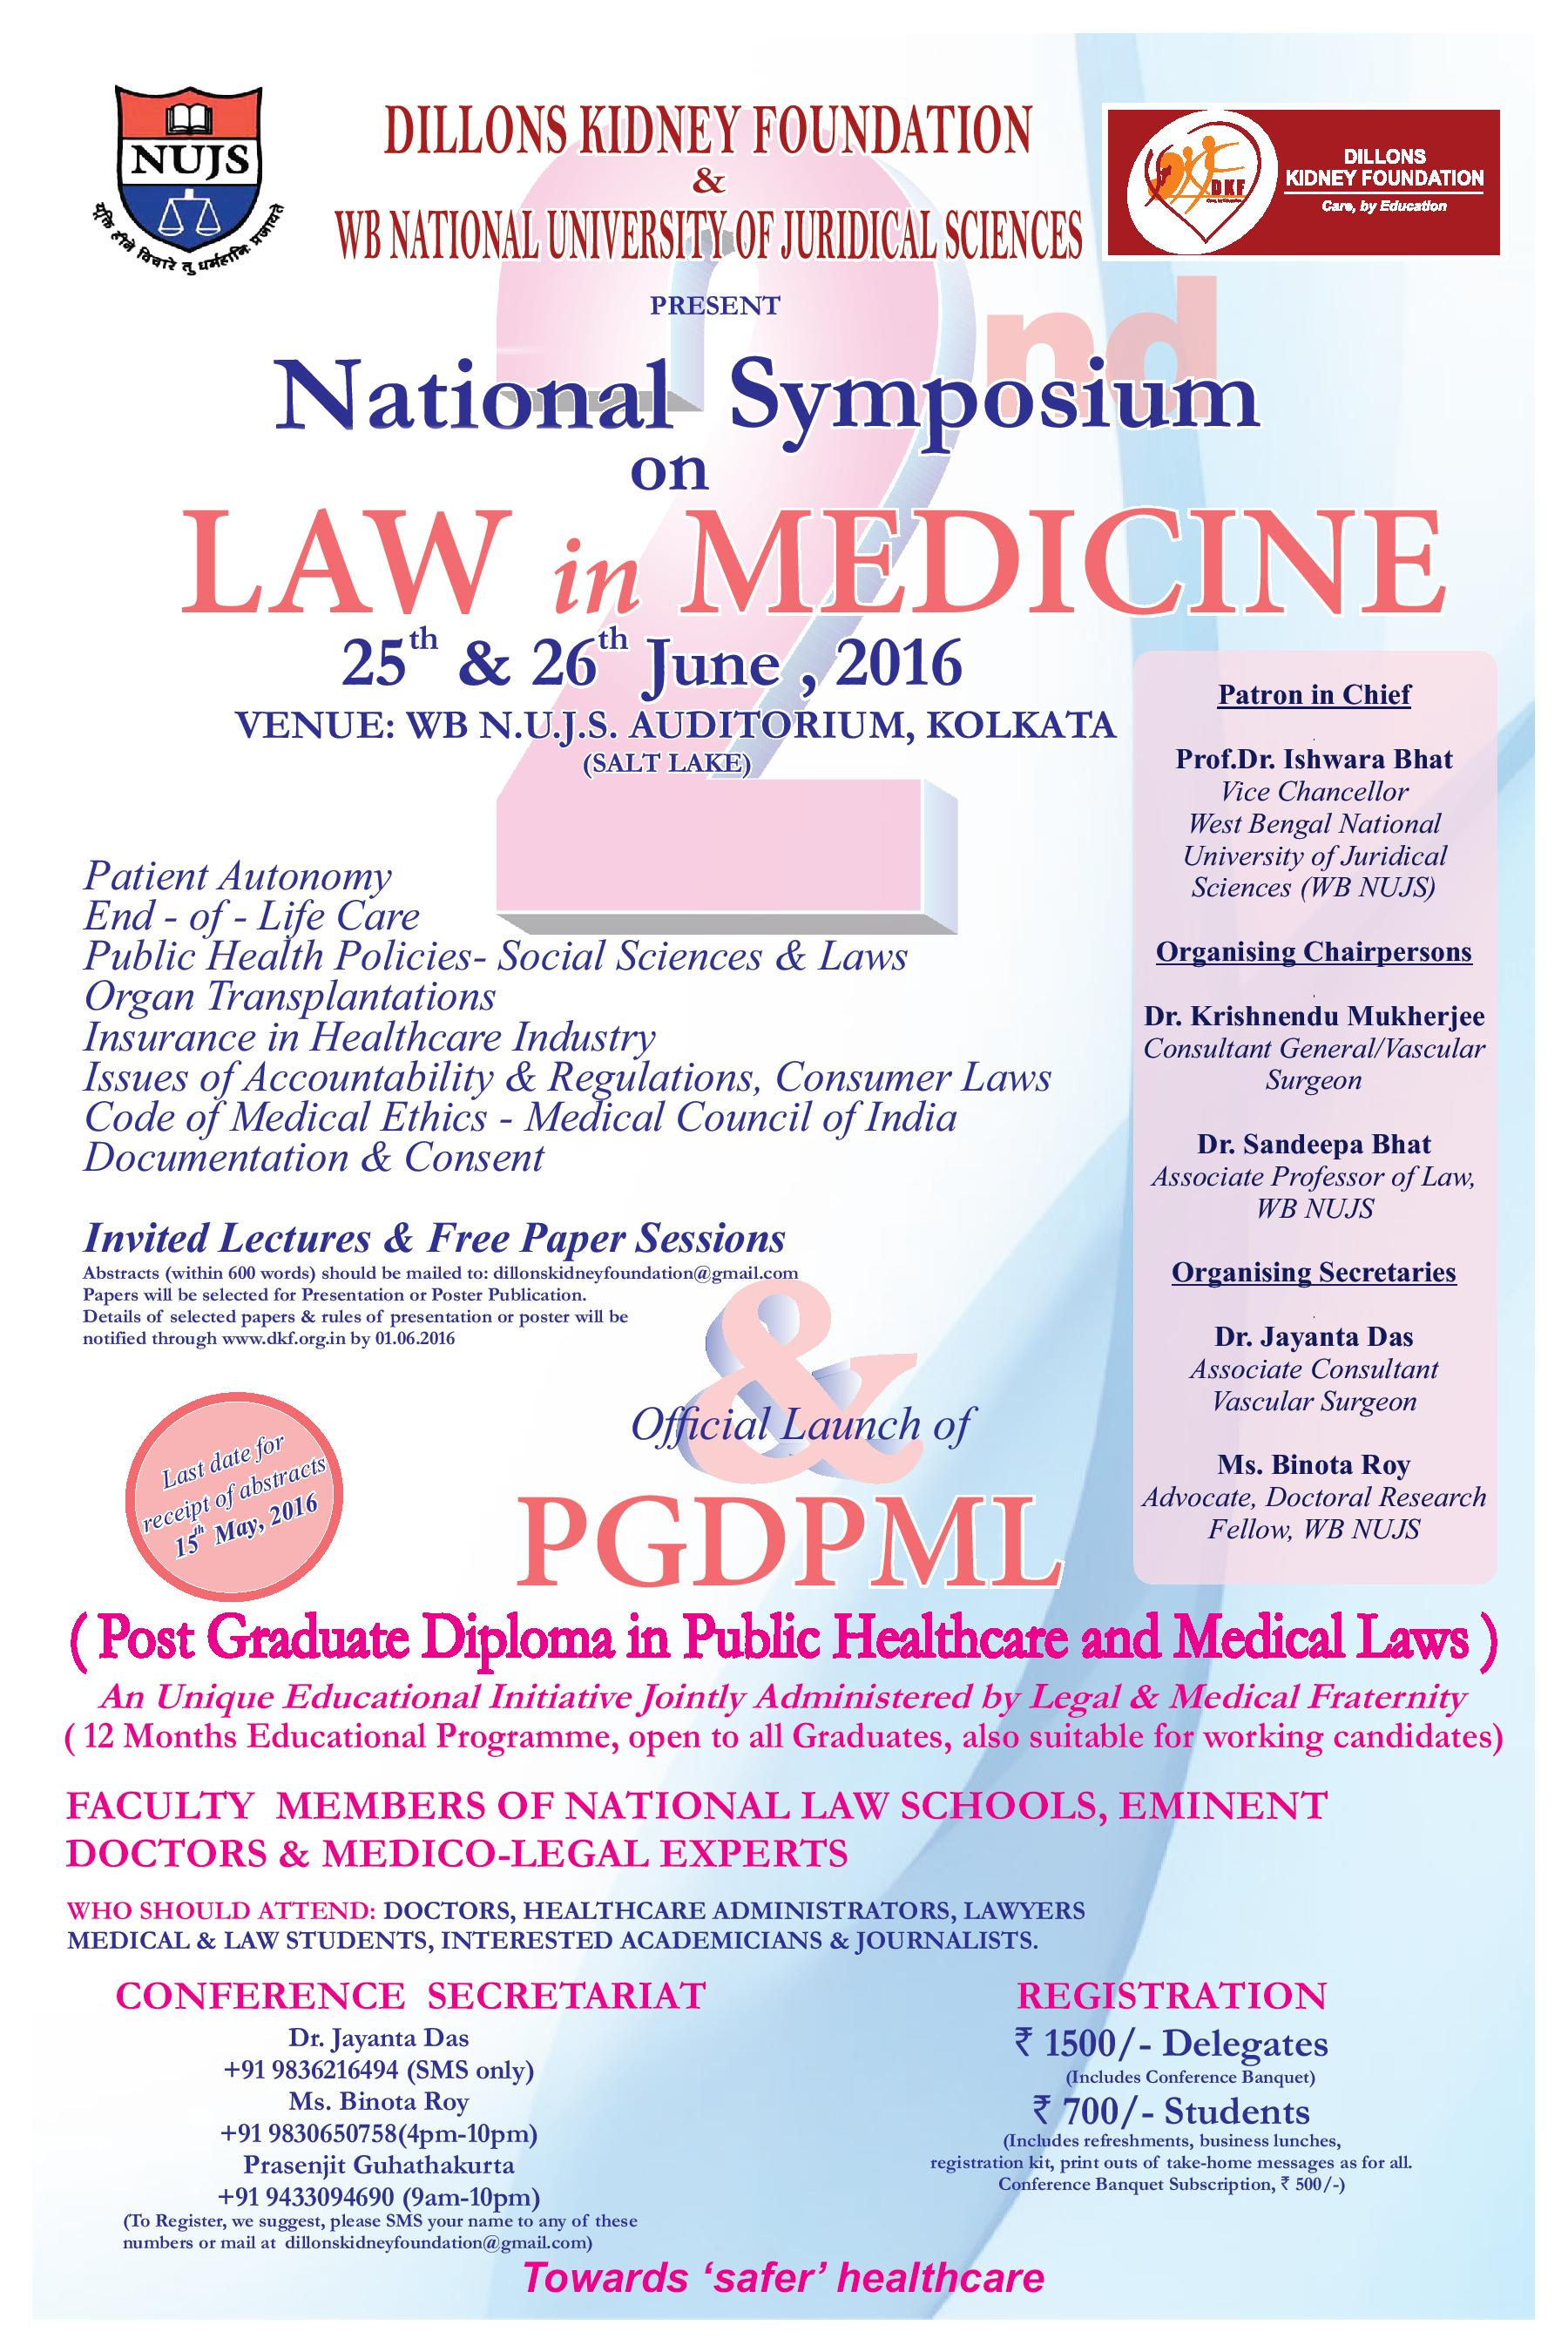 Call for Papers: NUJS' National Symposium on Law in Medicine